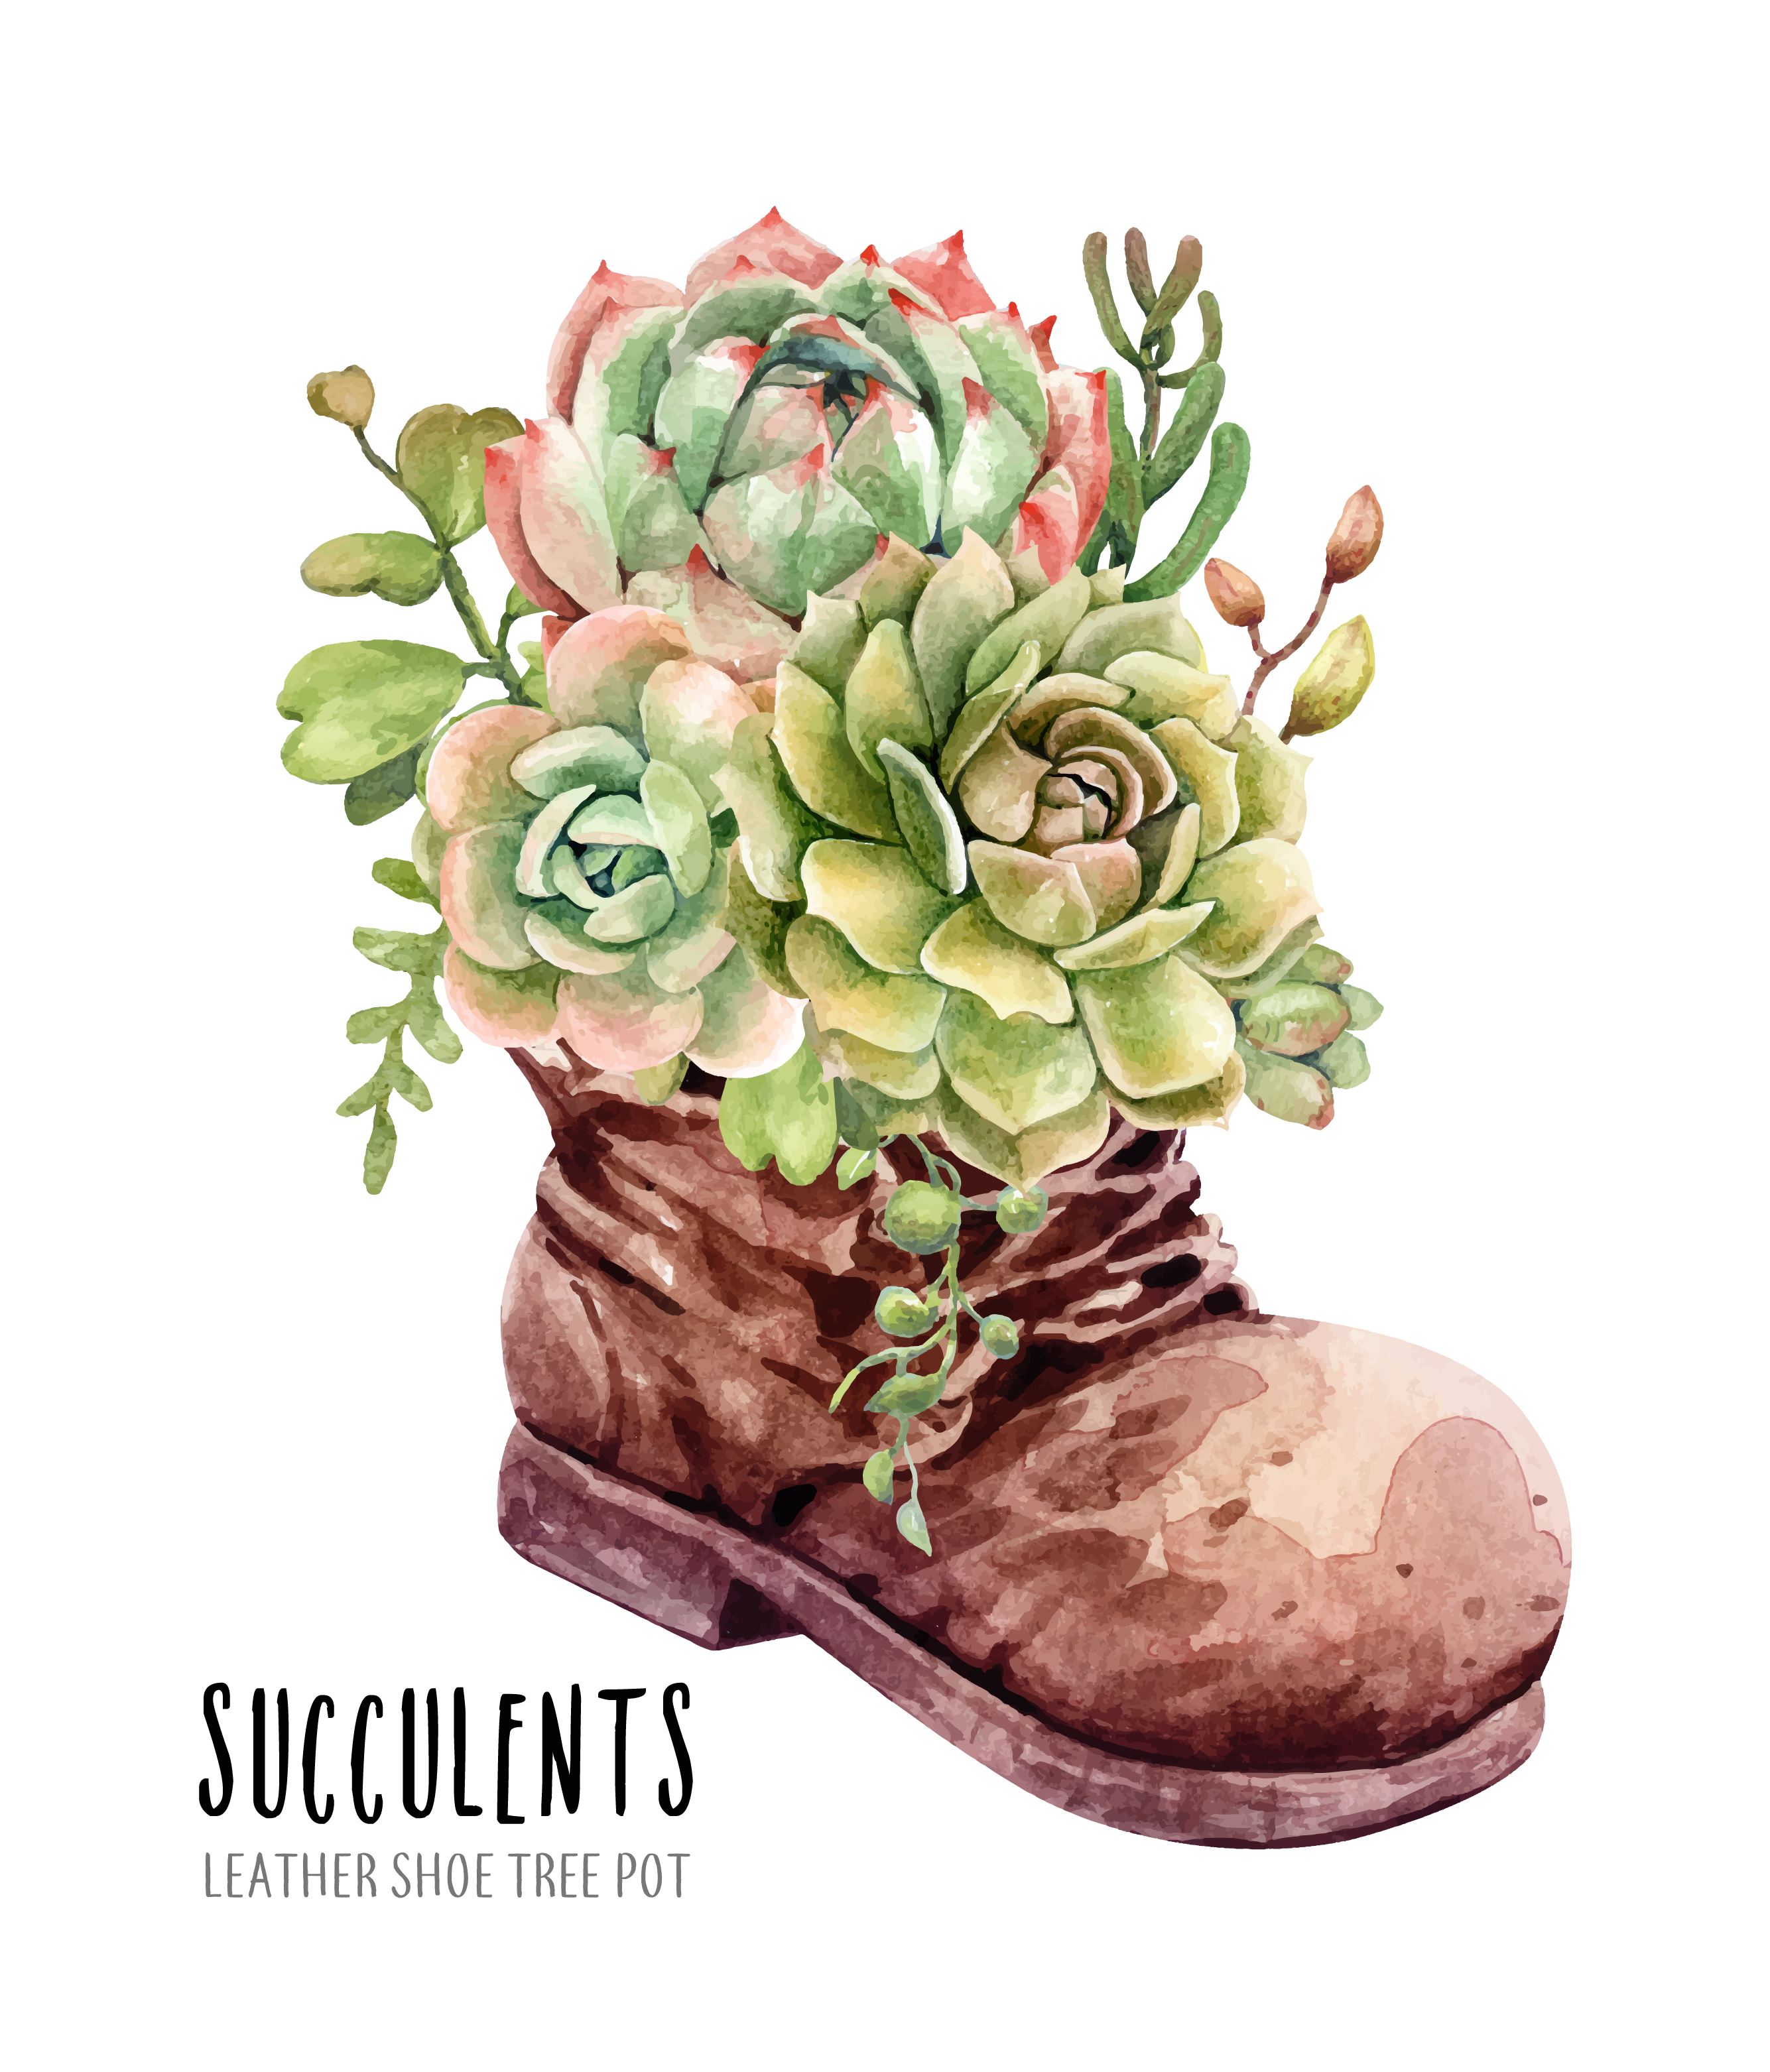 Floral And Botanical Logos Collection: Watercolor Collection Of Succulents In Leather Shoe Boot